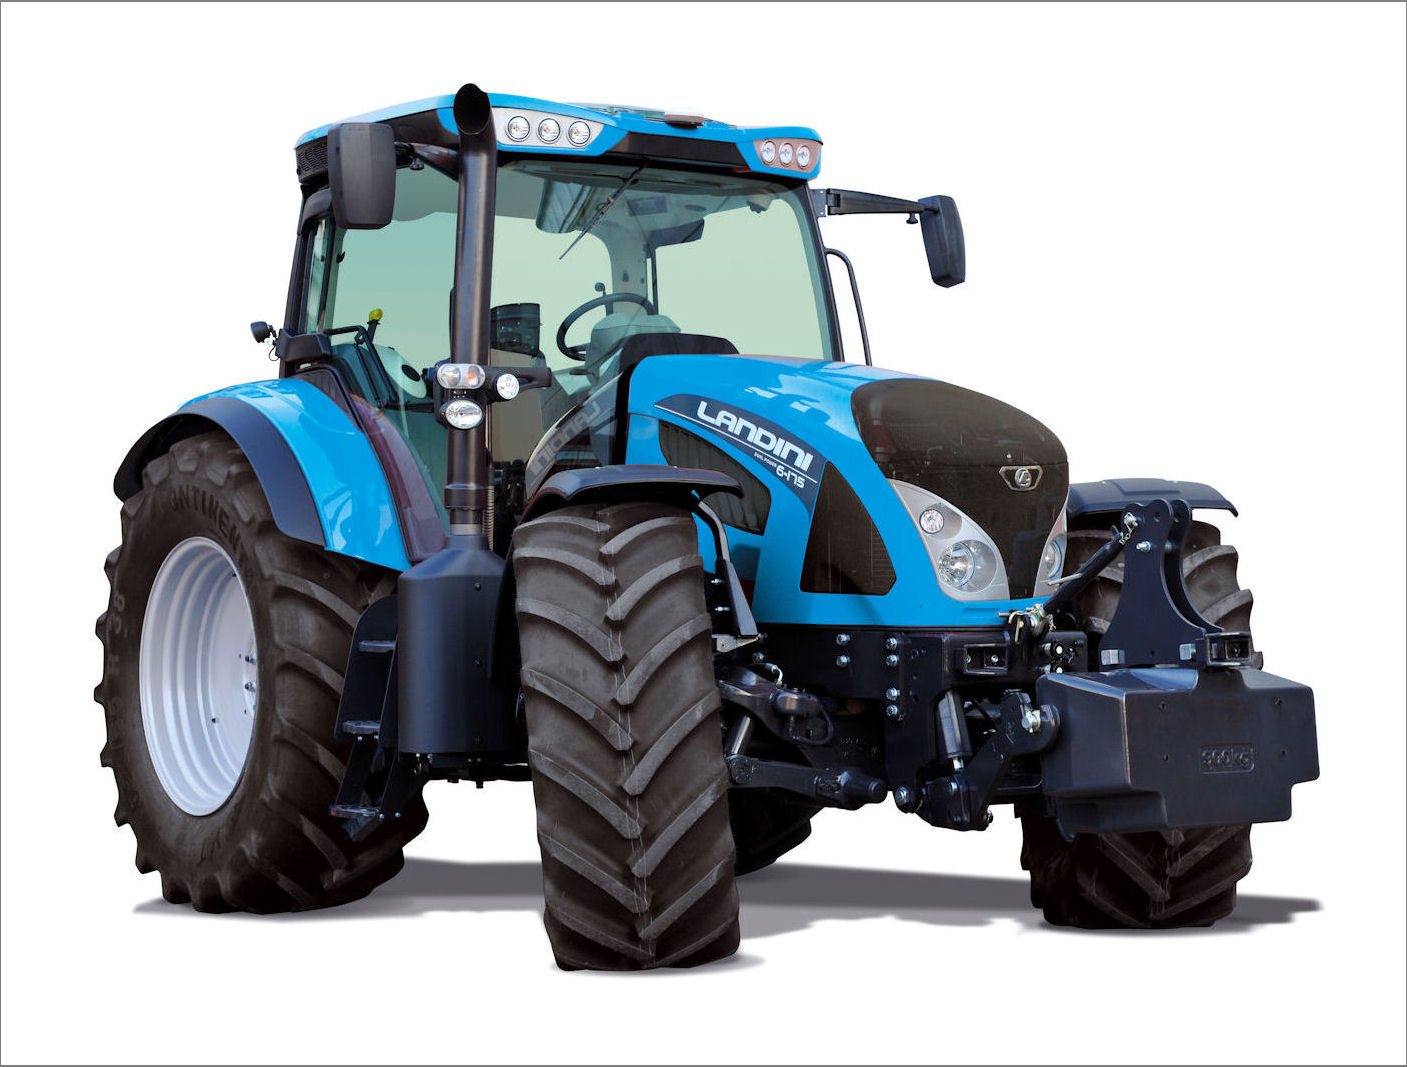 High-spec features abound on the new Landini 6 Series tractors, including fingertip seat-mounted controls for most functions in the well-appointed Lounge cab.